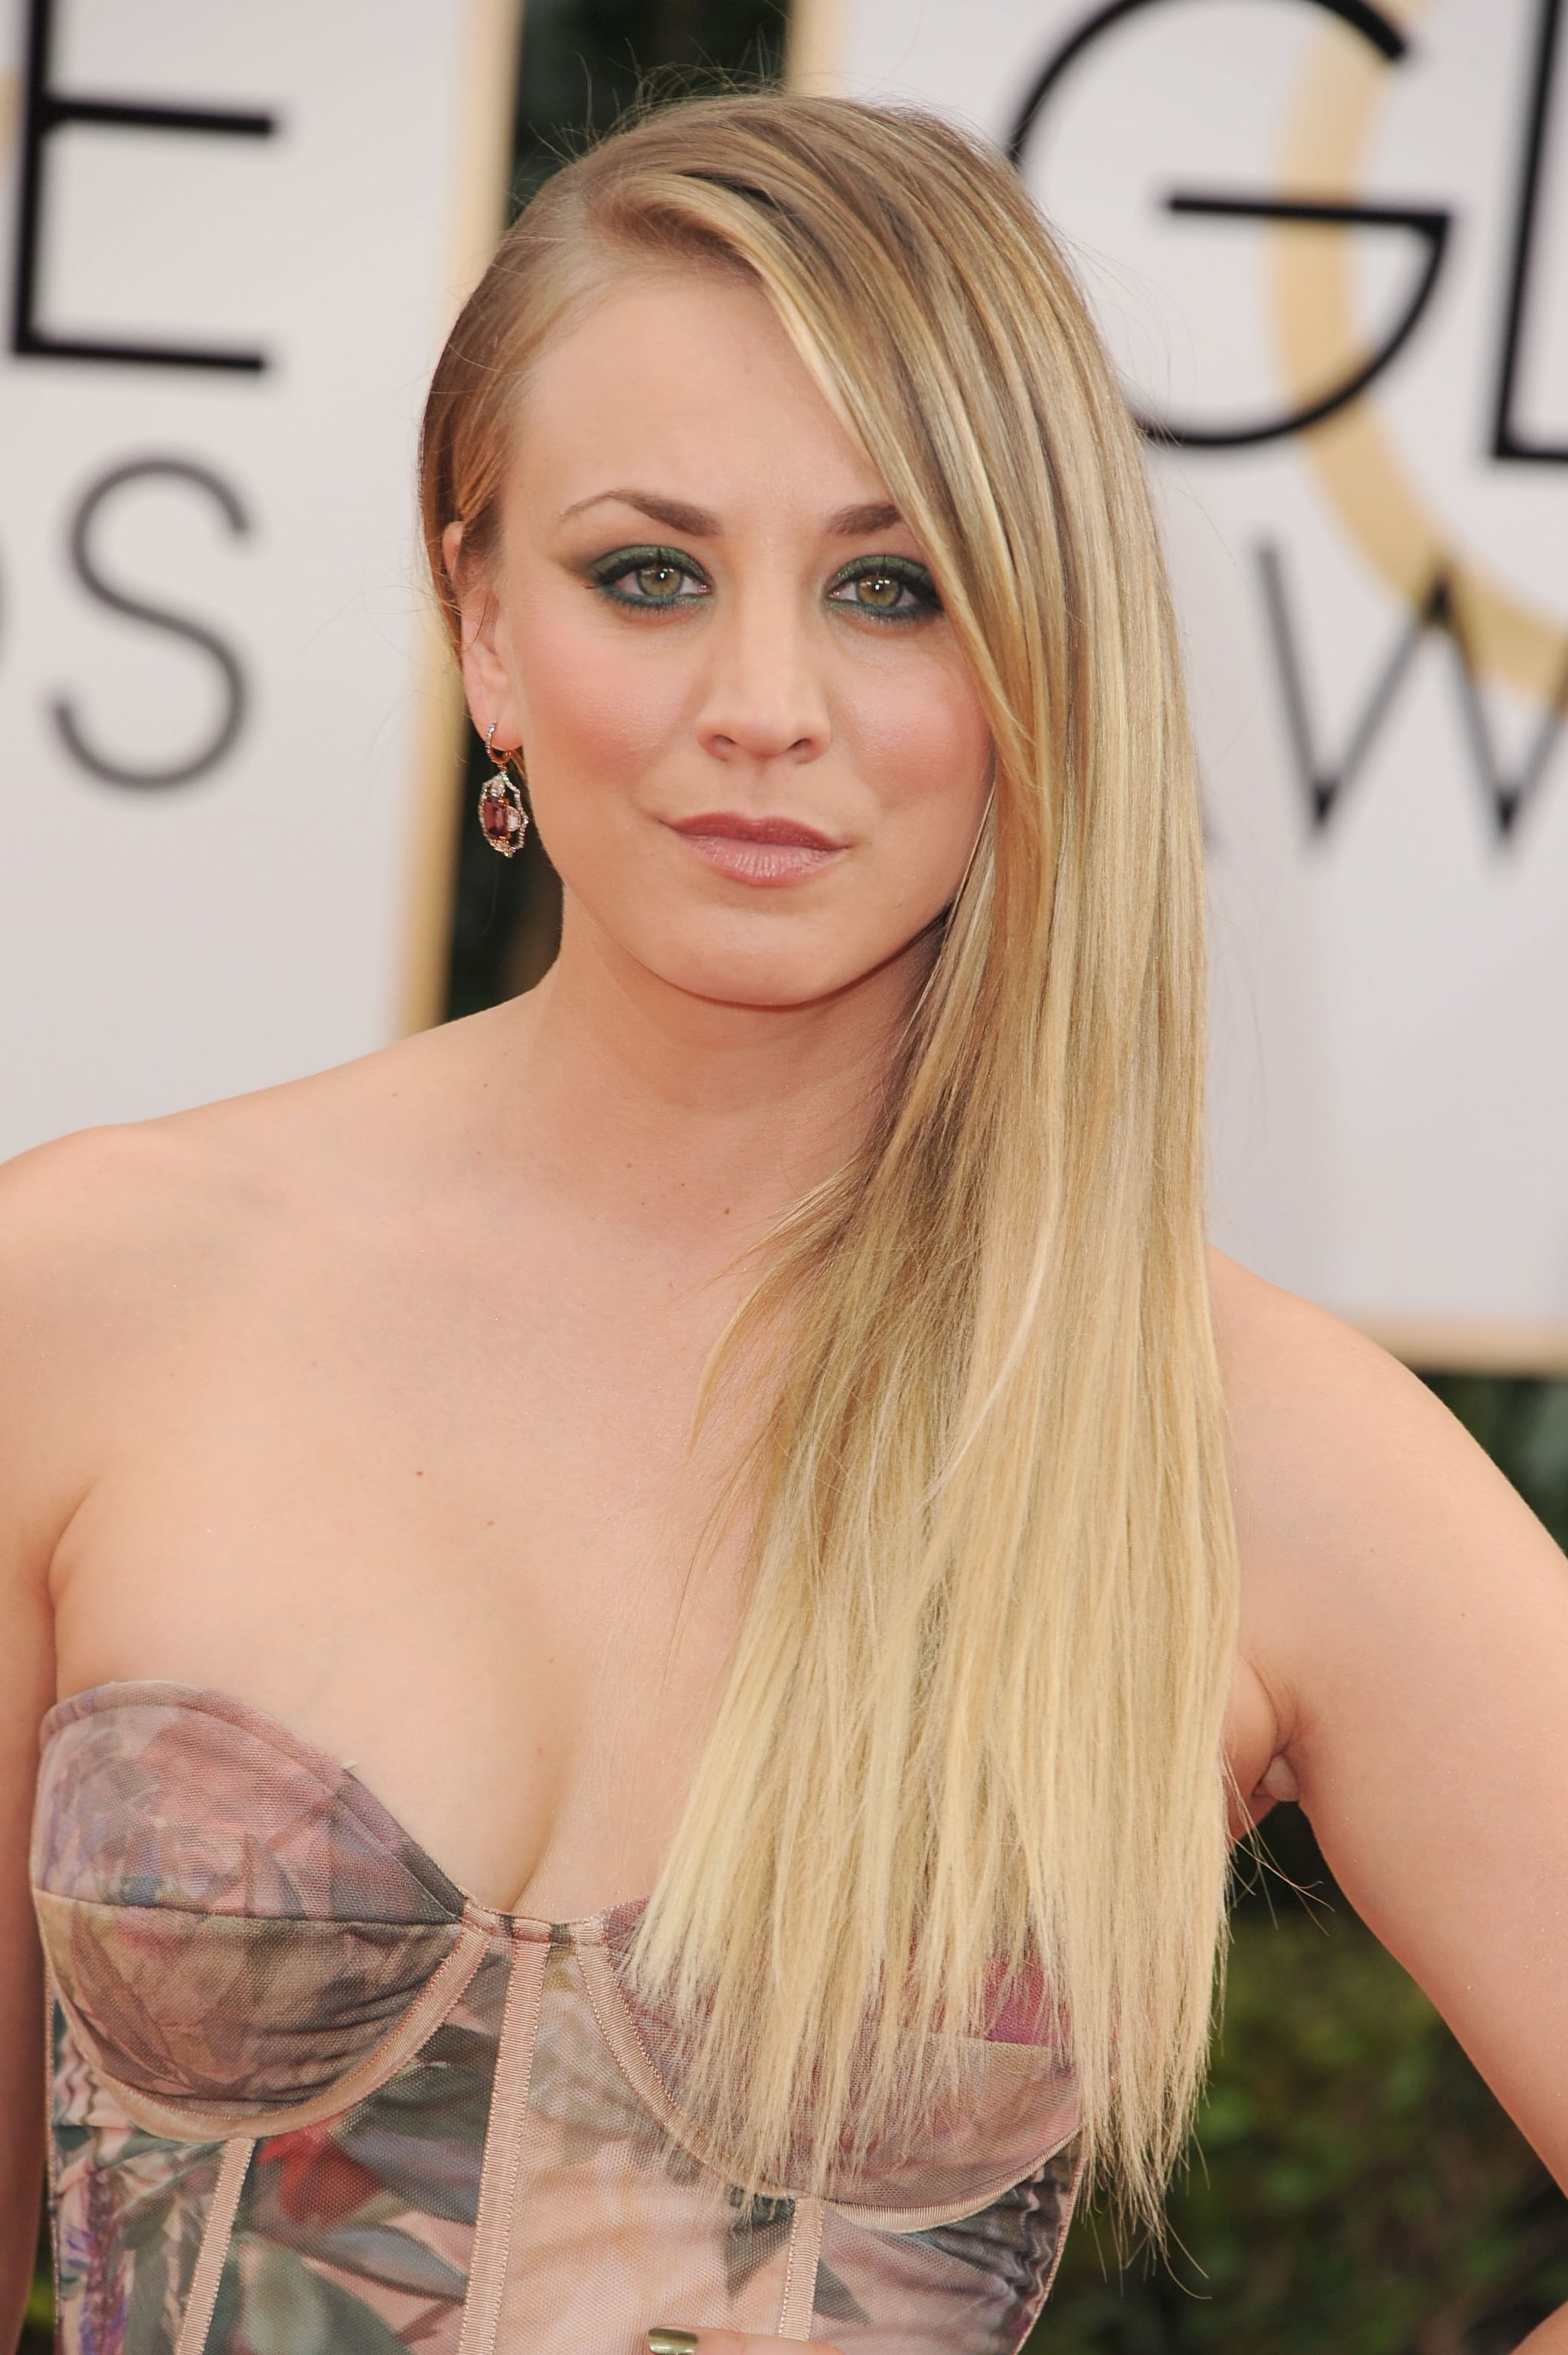 Kaley Cuoco Held Her Own at the Golden Globes